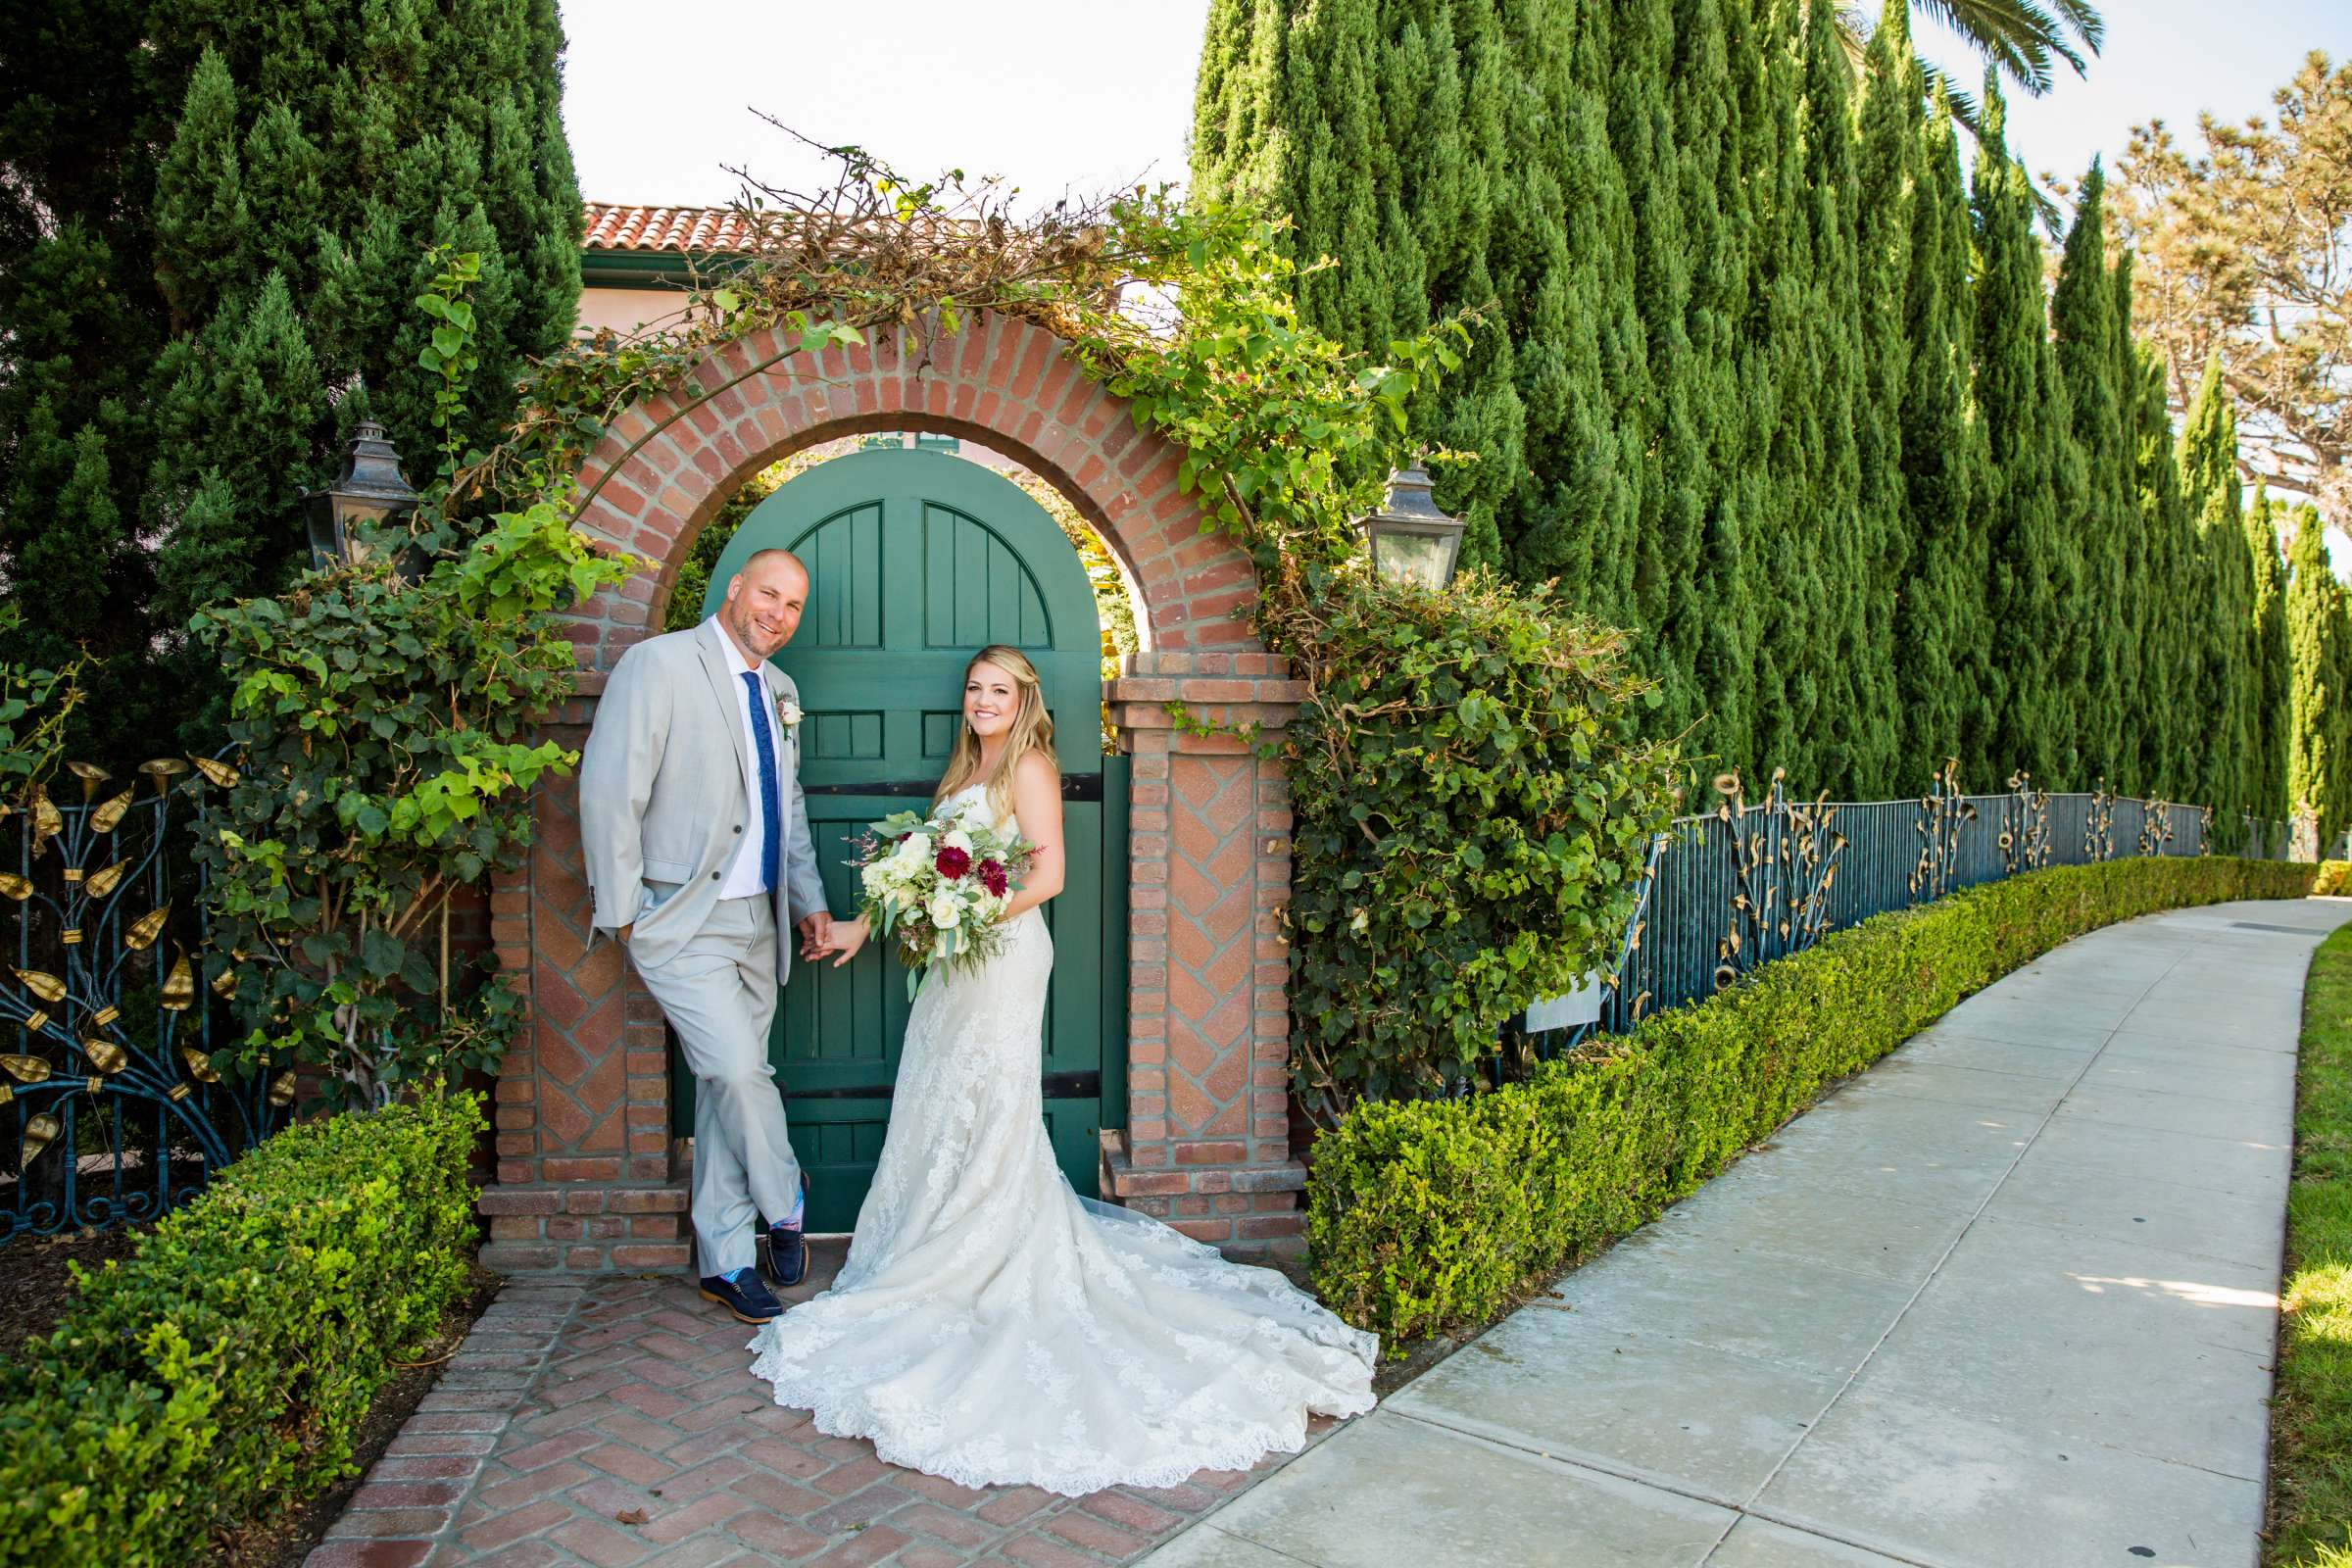 Cuvier Club Wedding coordinated by The Abbey Catering, Chelsey and Eric Wedding Photo #1 by True Photography